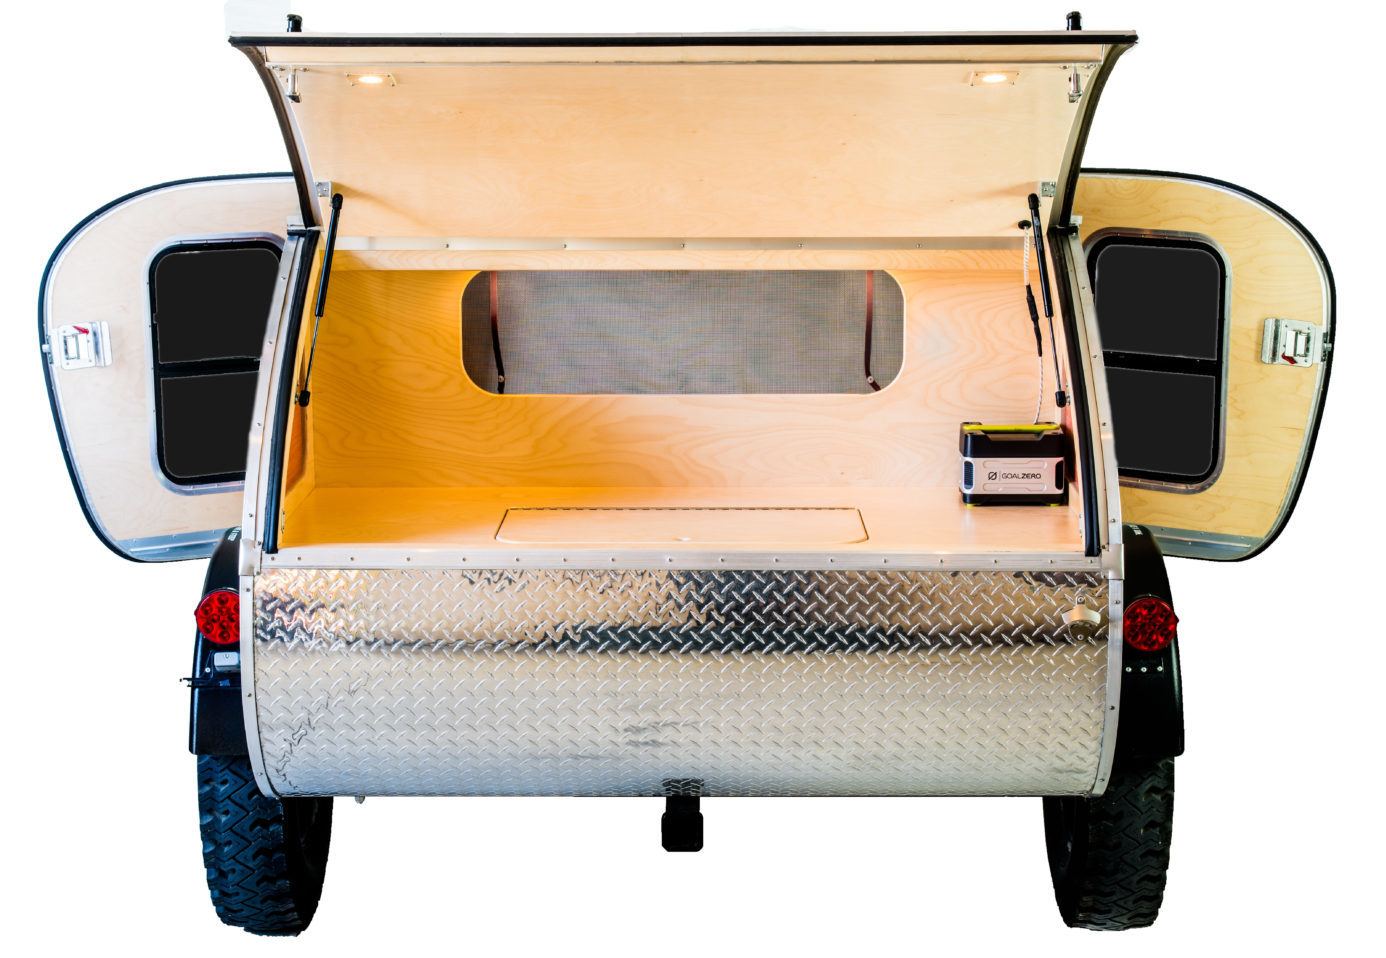 T.E. Rear Hatch Double Door